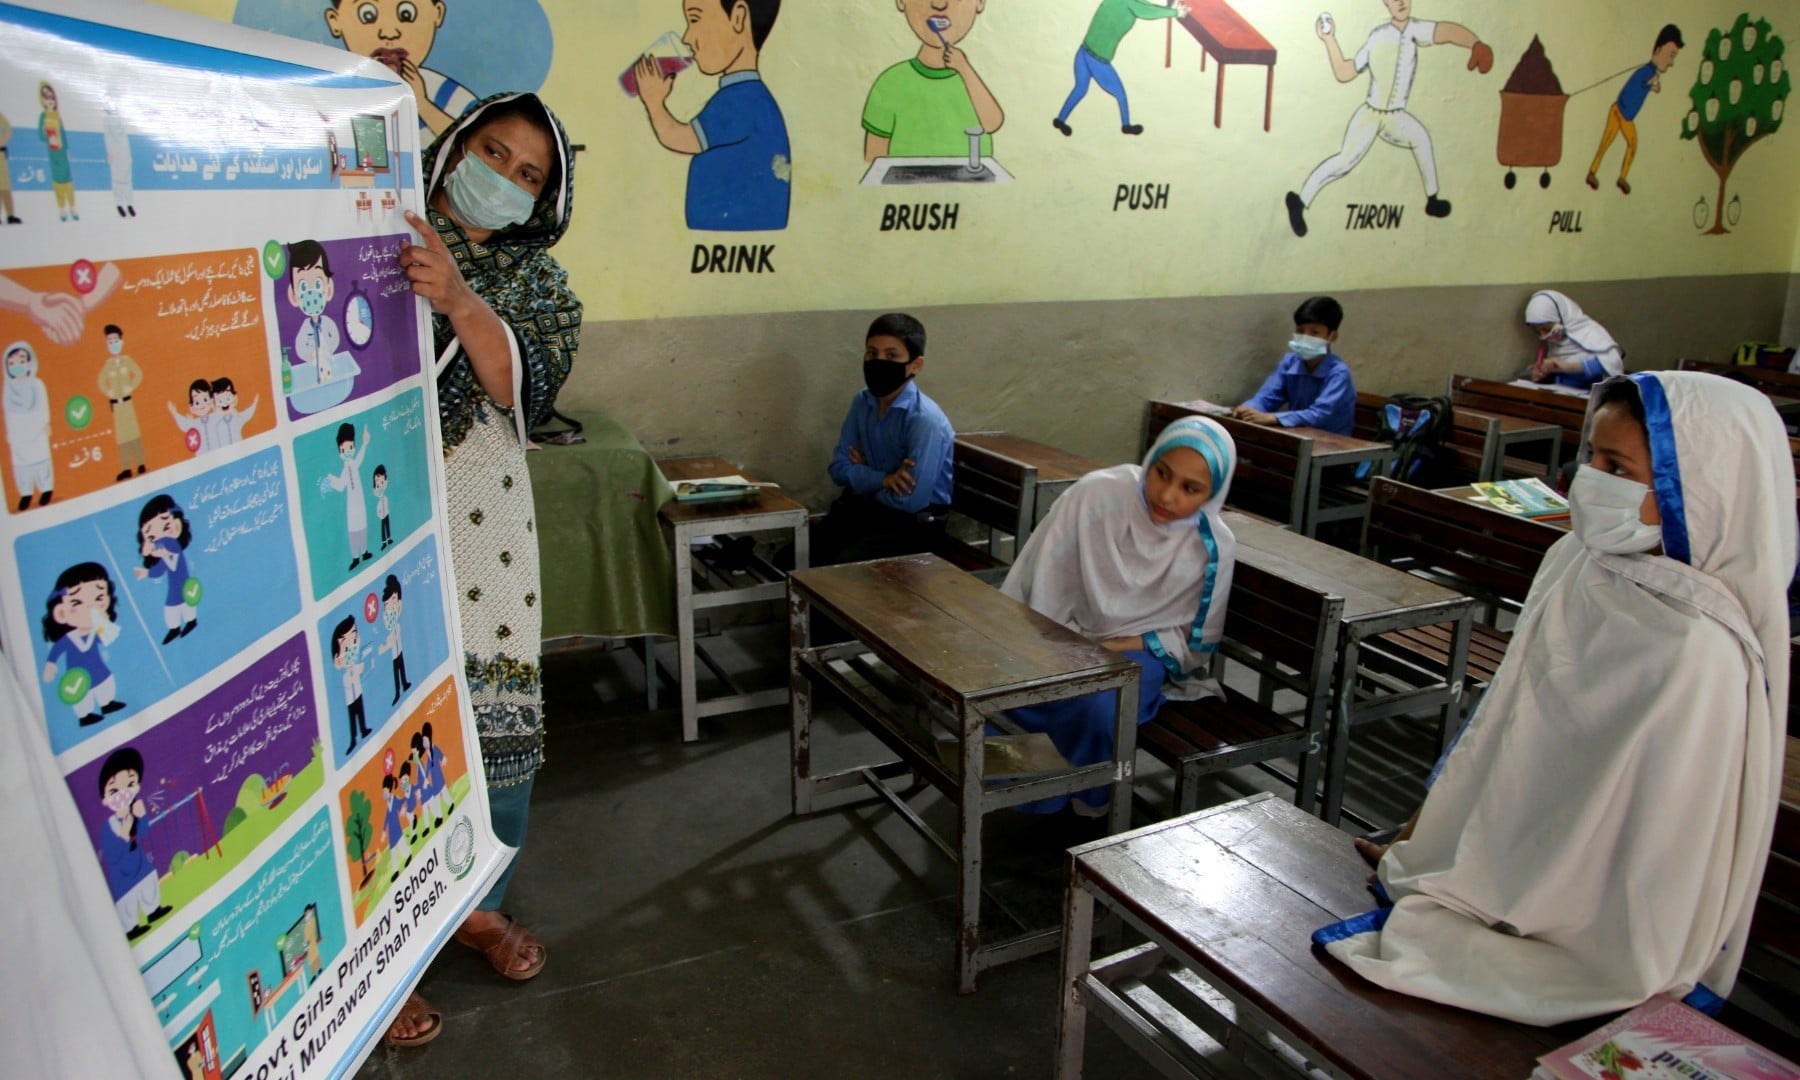 A teacher briefs about precautions of the coronavirus to students at a primary school in Peshawar on September 30. — AP